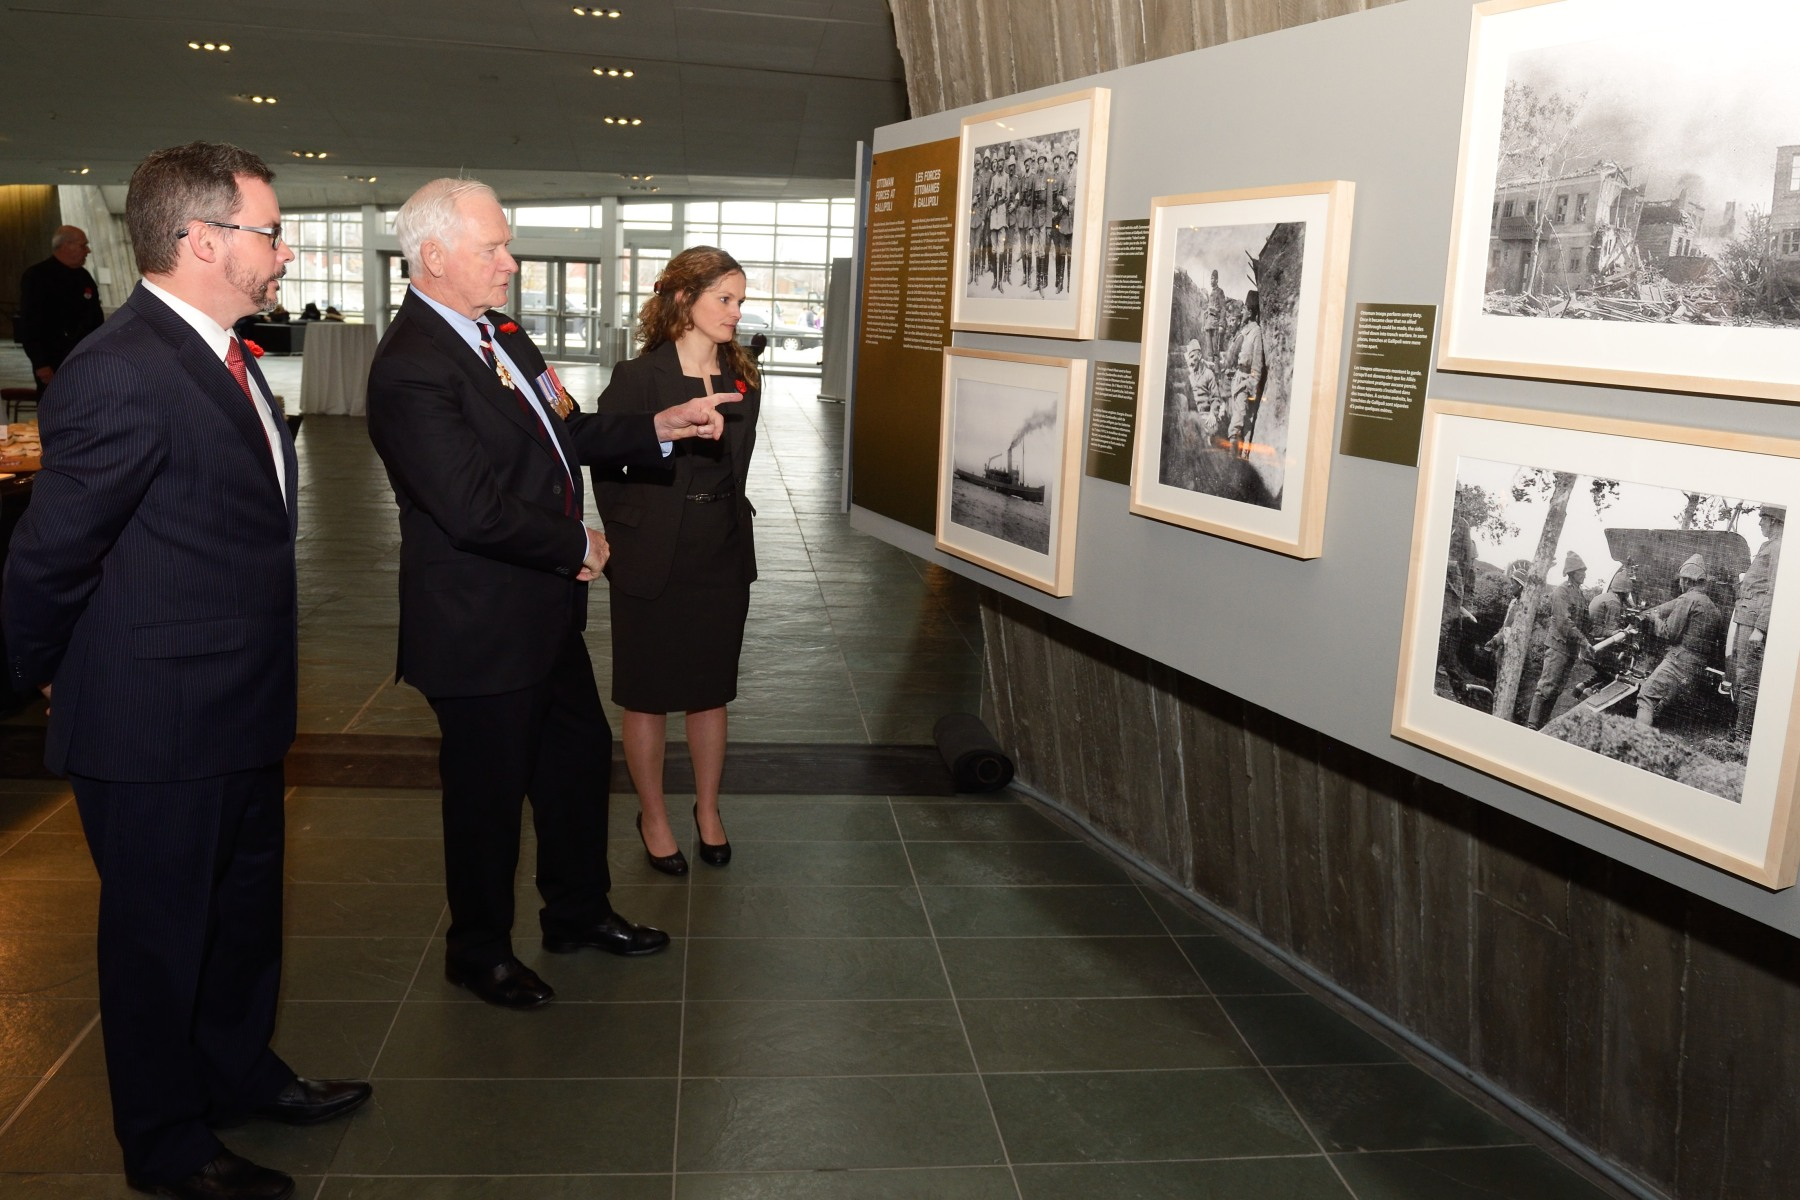 Following the ceremony, the Governor General visited the exhibit that recounts the Gallipoli Campaign on display inside the Canadian War Museum.